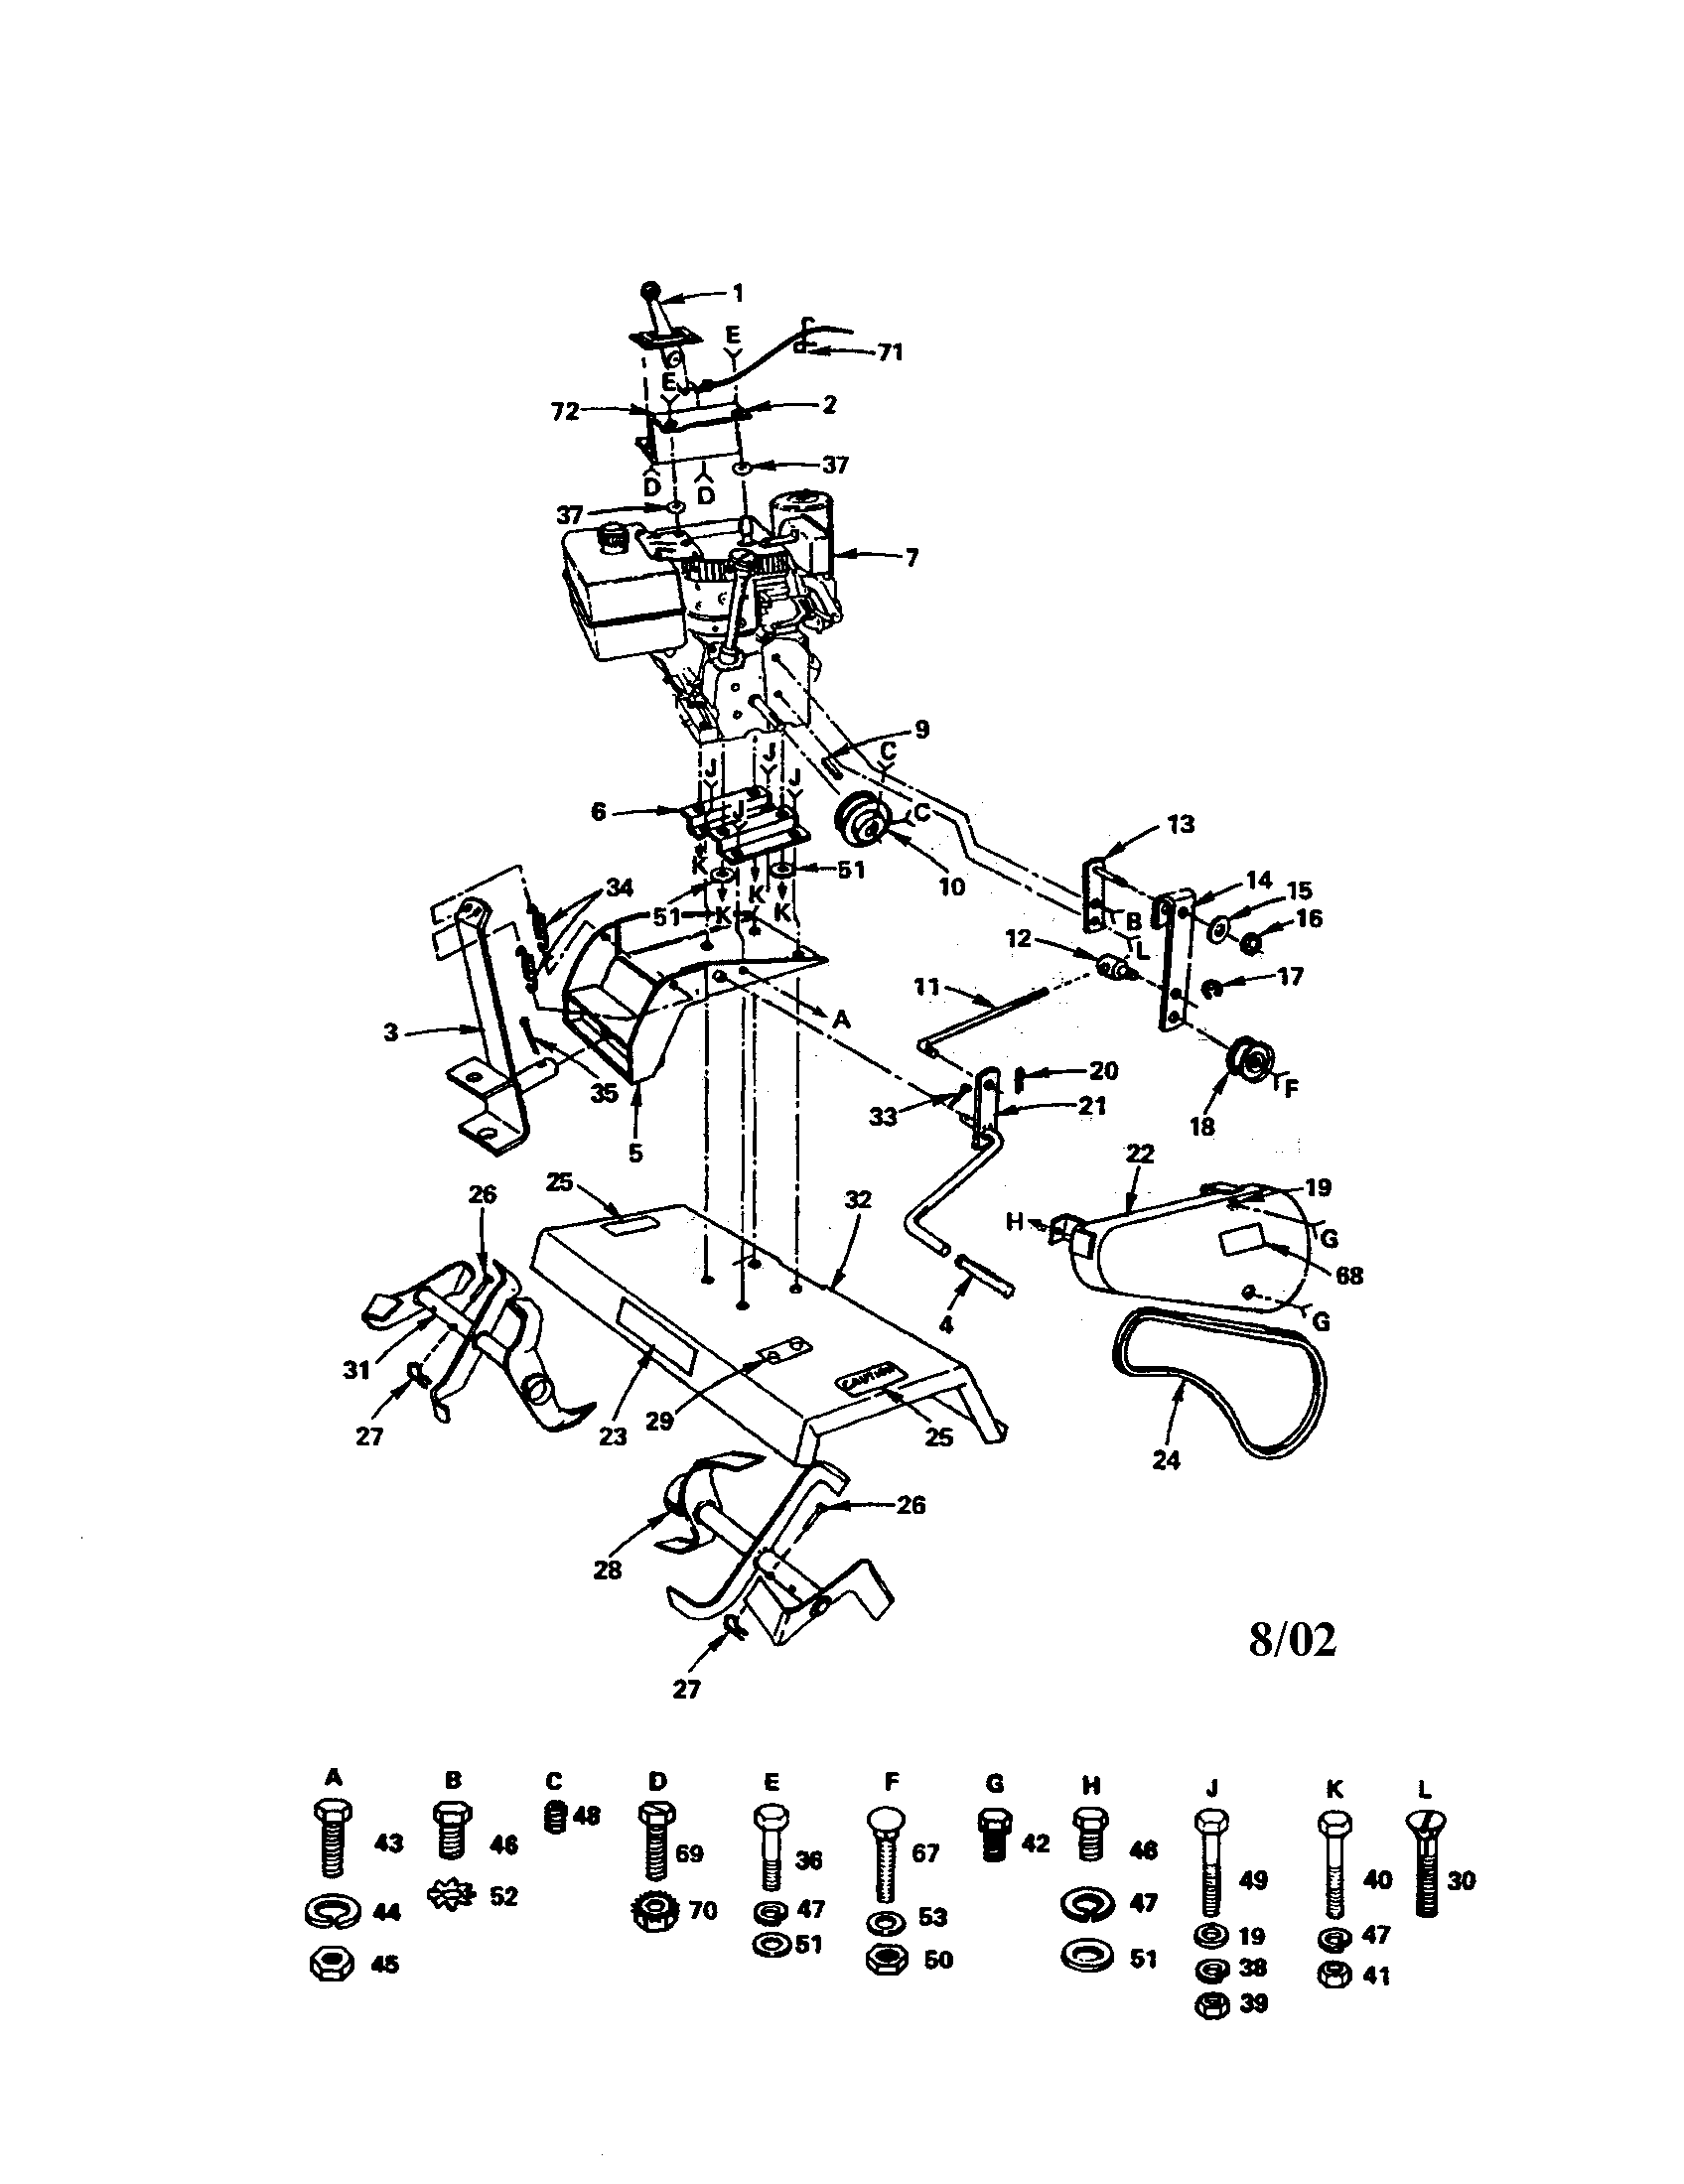 Farmall C Wiring Diagram : 24 Wiring Diagram Images